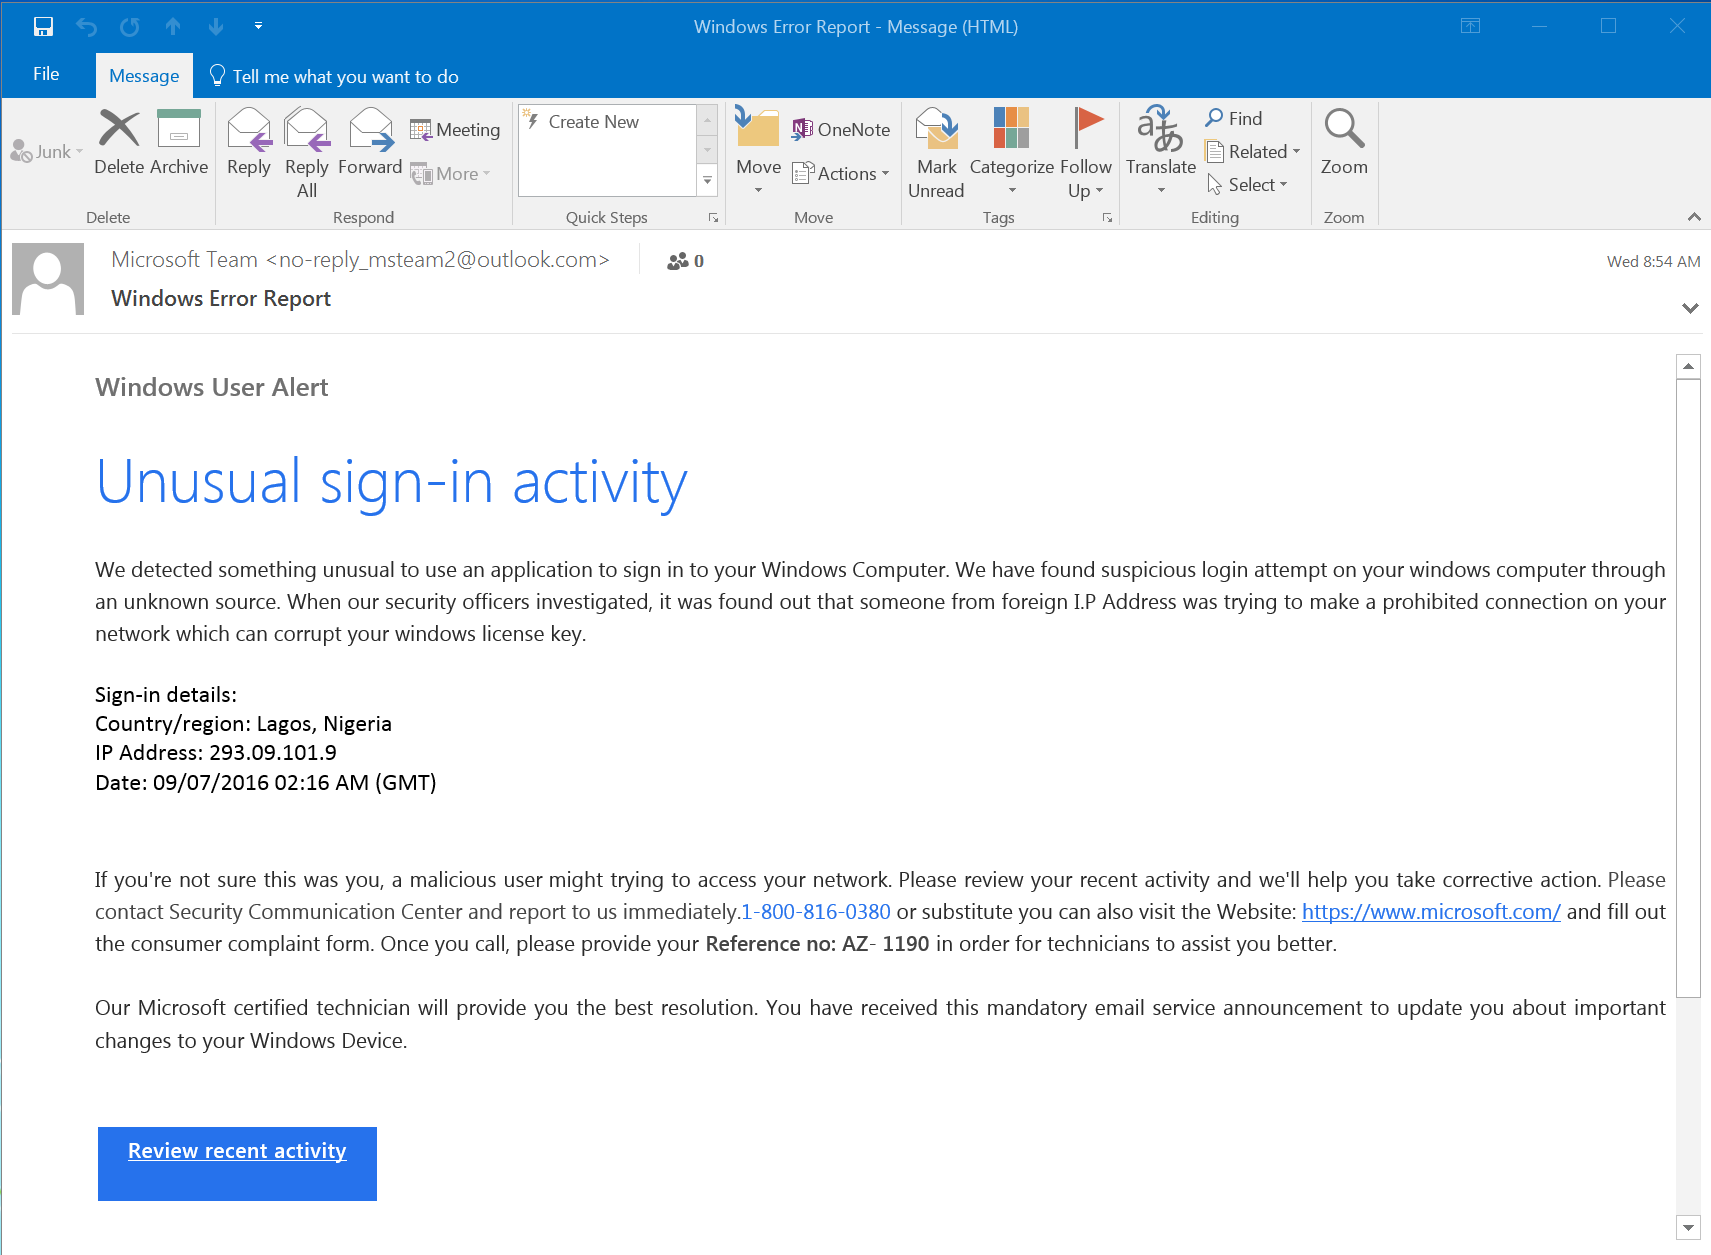 Malicious Windows Warning Email